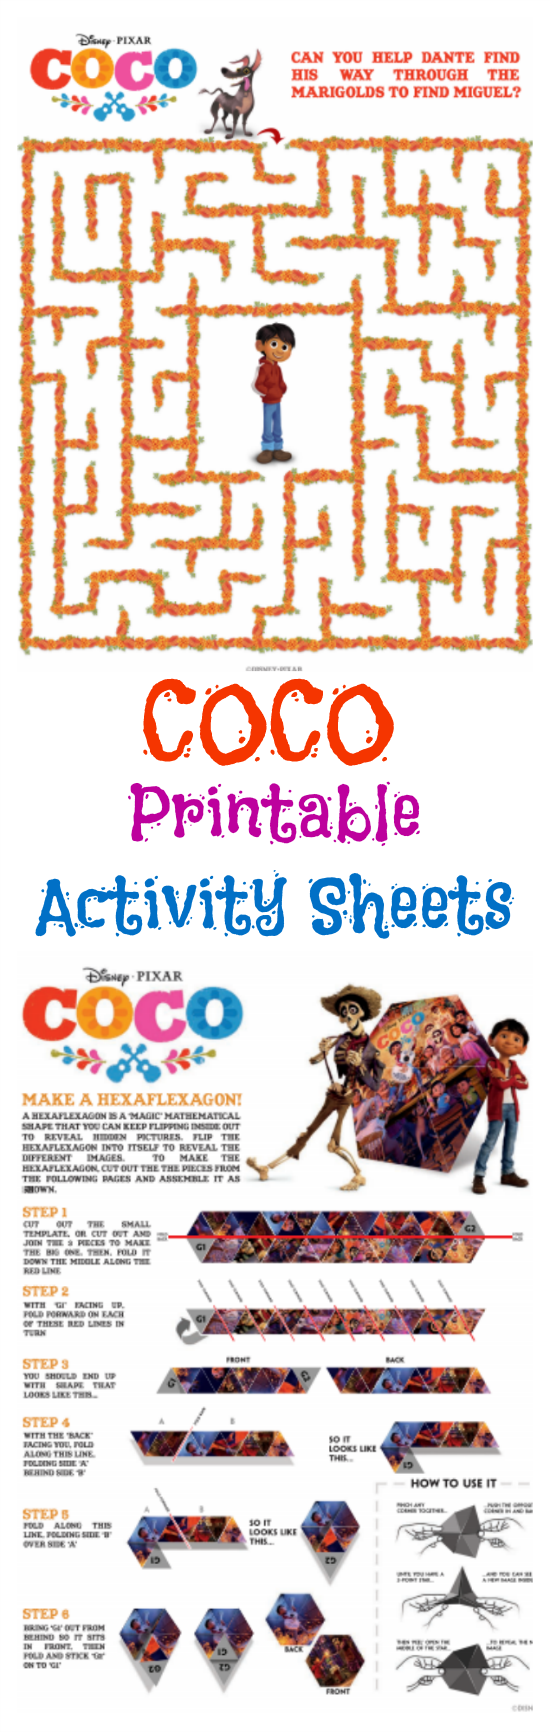 These fun these printable Disney Pixar COCO activity sheets include coloring sheets, a maze and a papercraft activity.